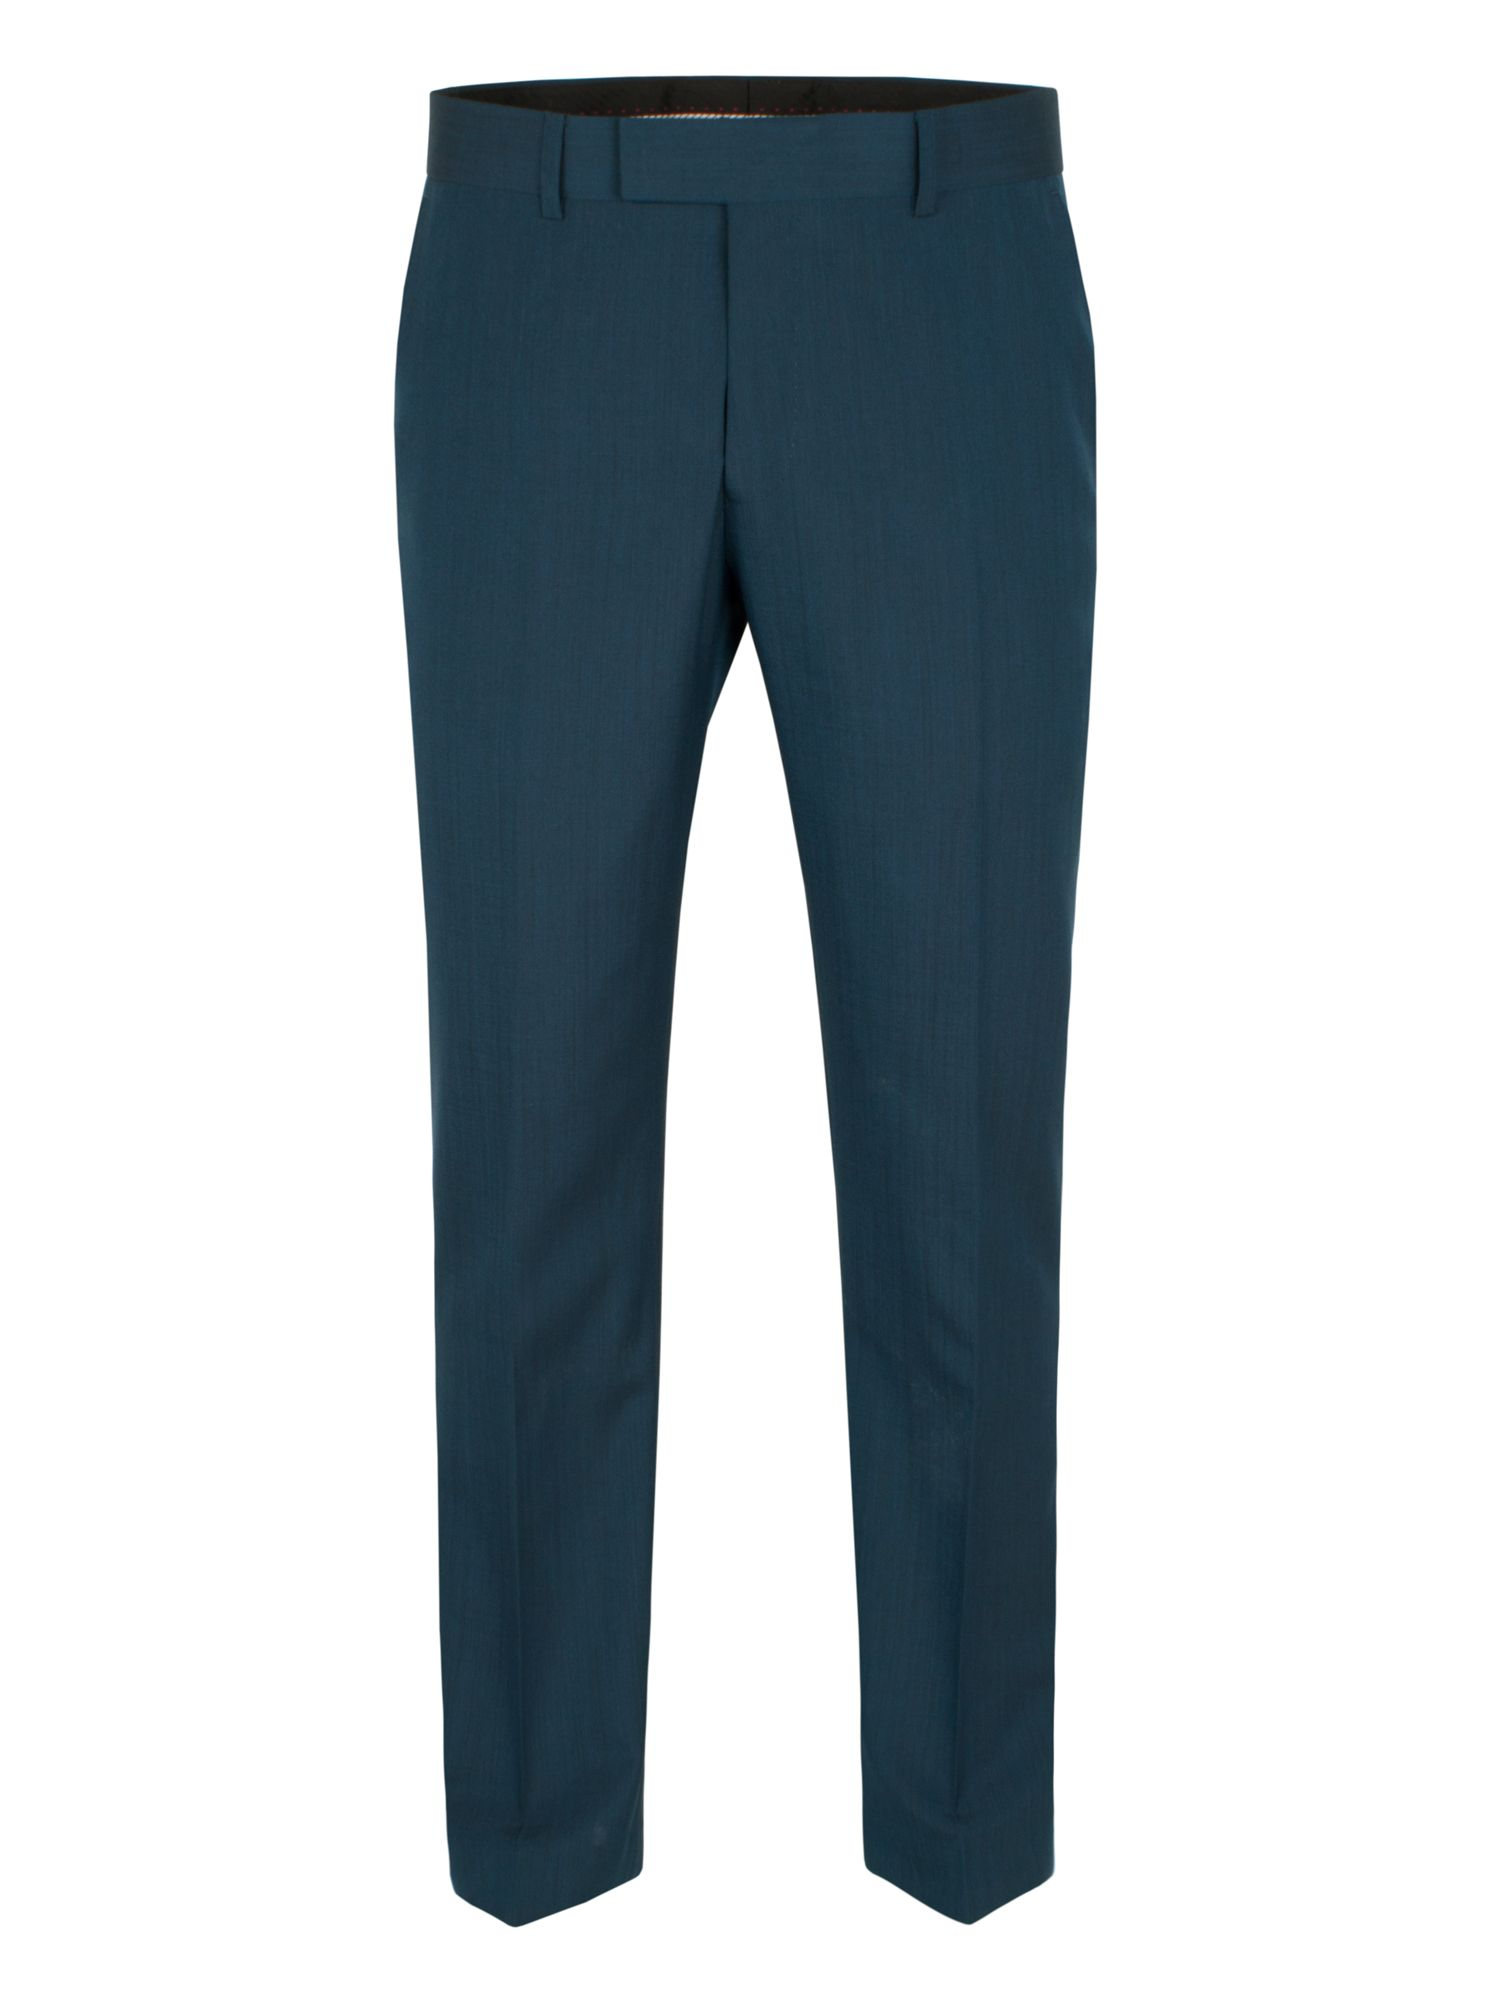 Teal tonic trouser